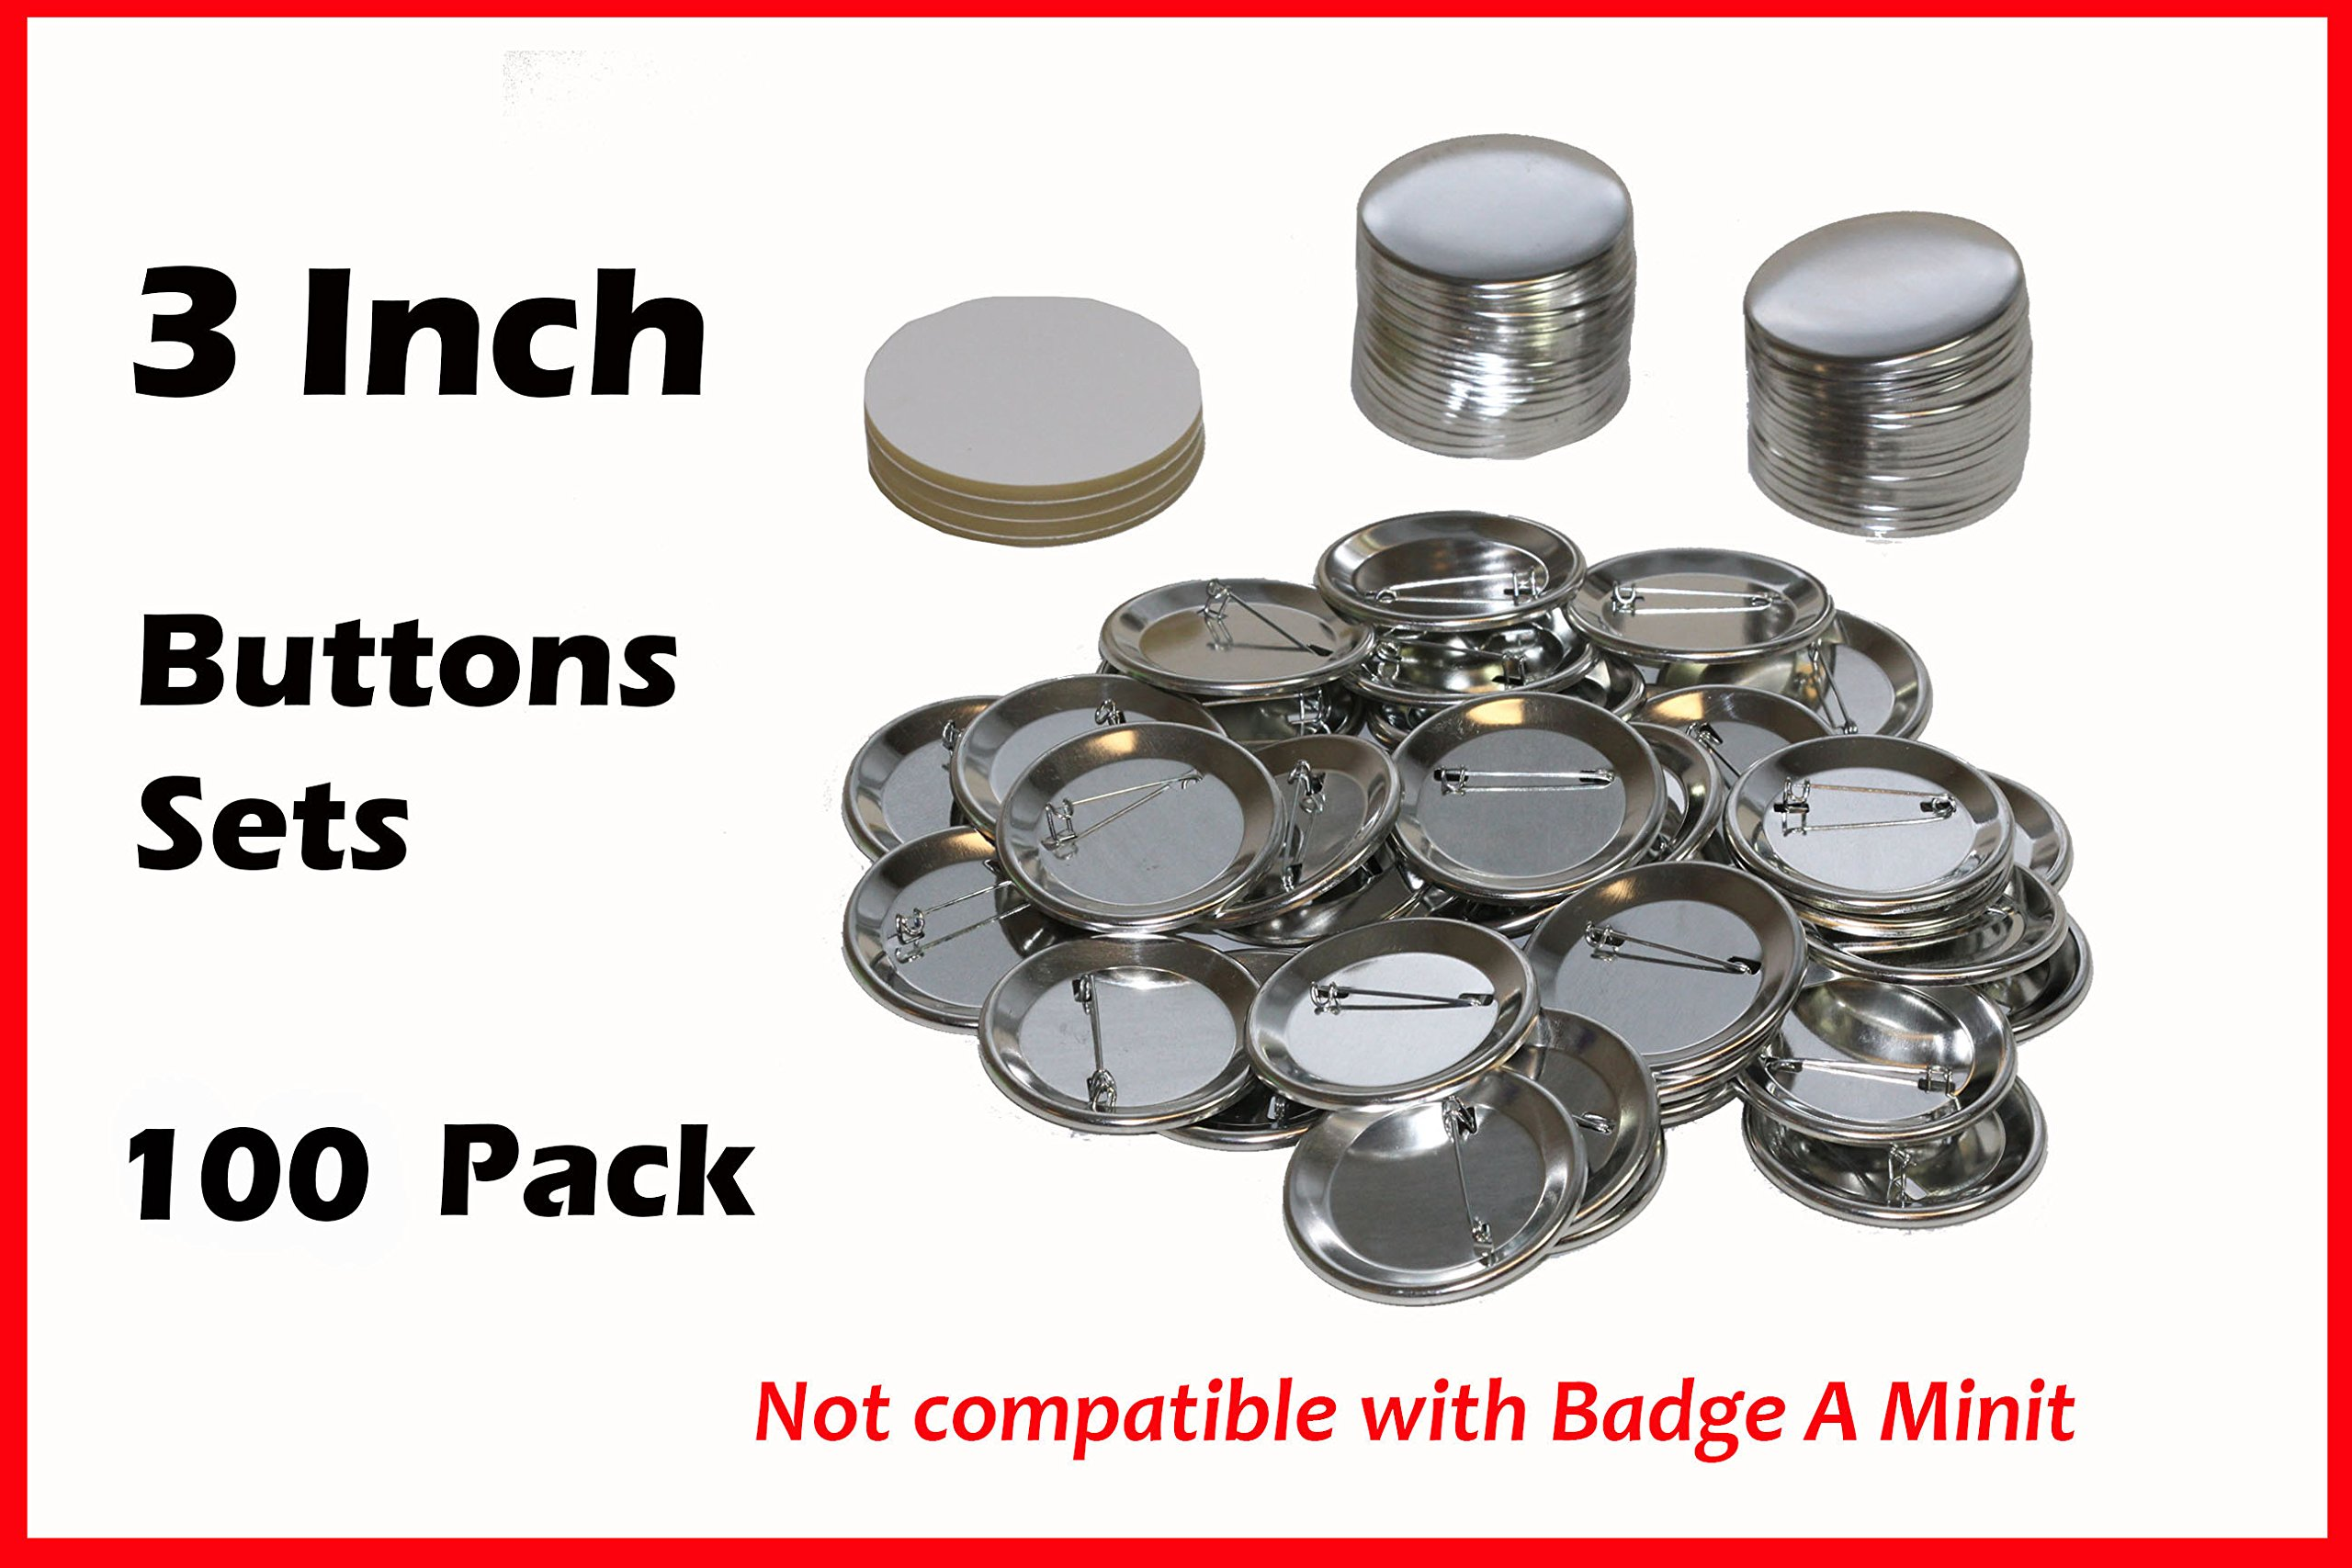 3 Inch Diameter 100 Pack Metal Round Buttons Parts - Metallic Badge Making Supplies by UpickDeals